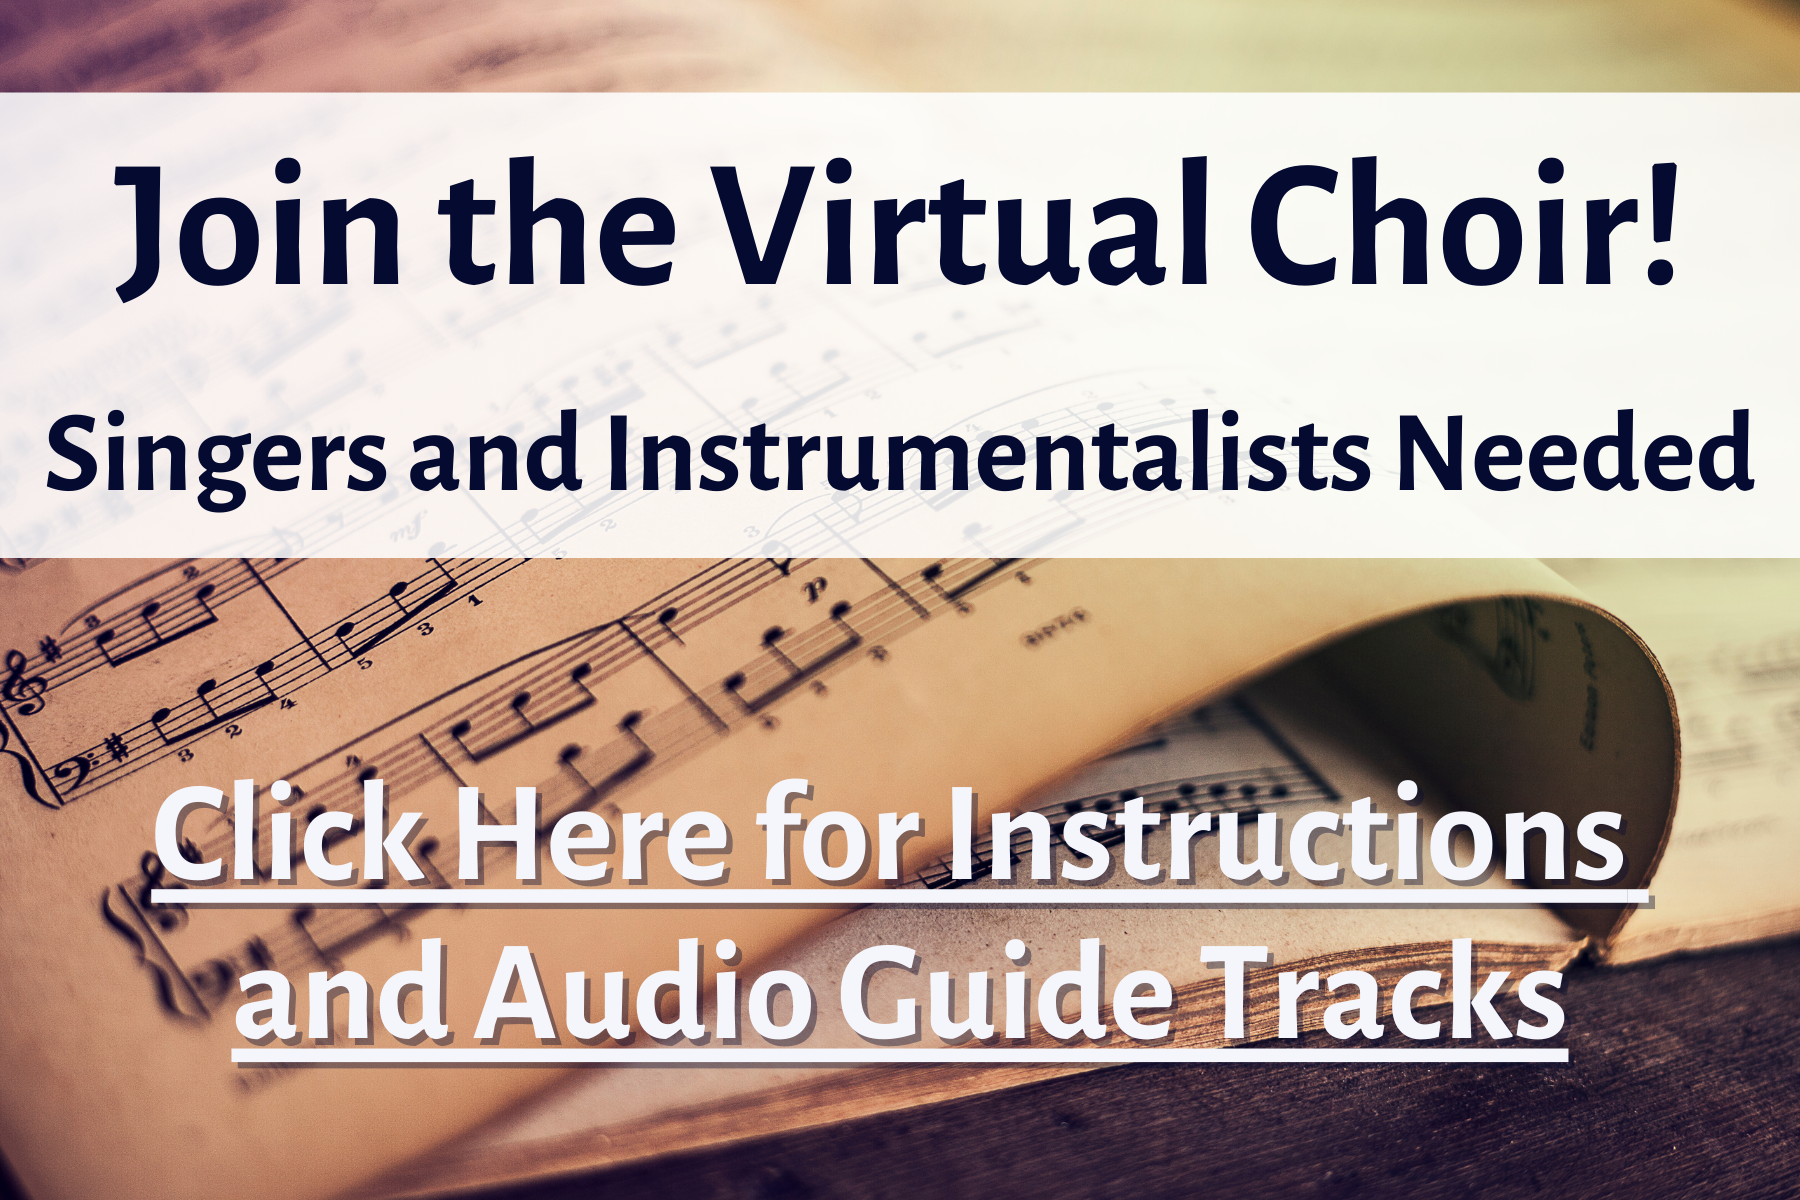 Join the Virtual Choir! Singers and Instrumentalists Needed